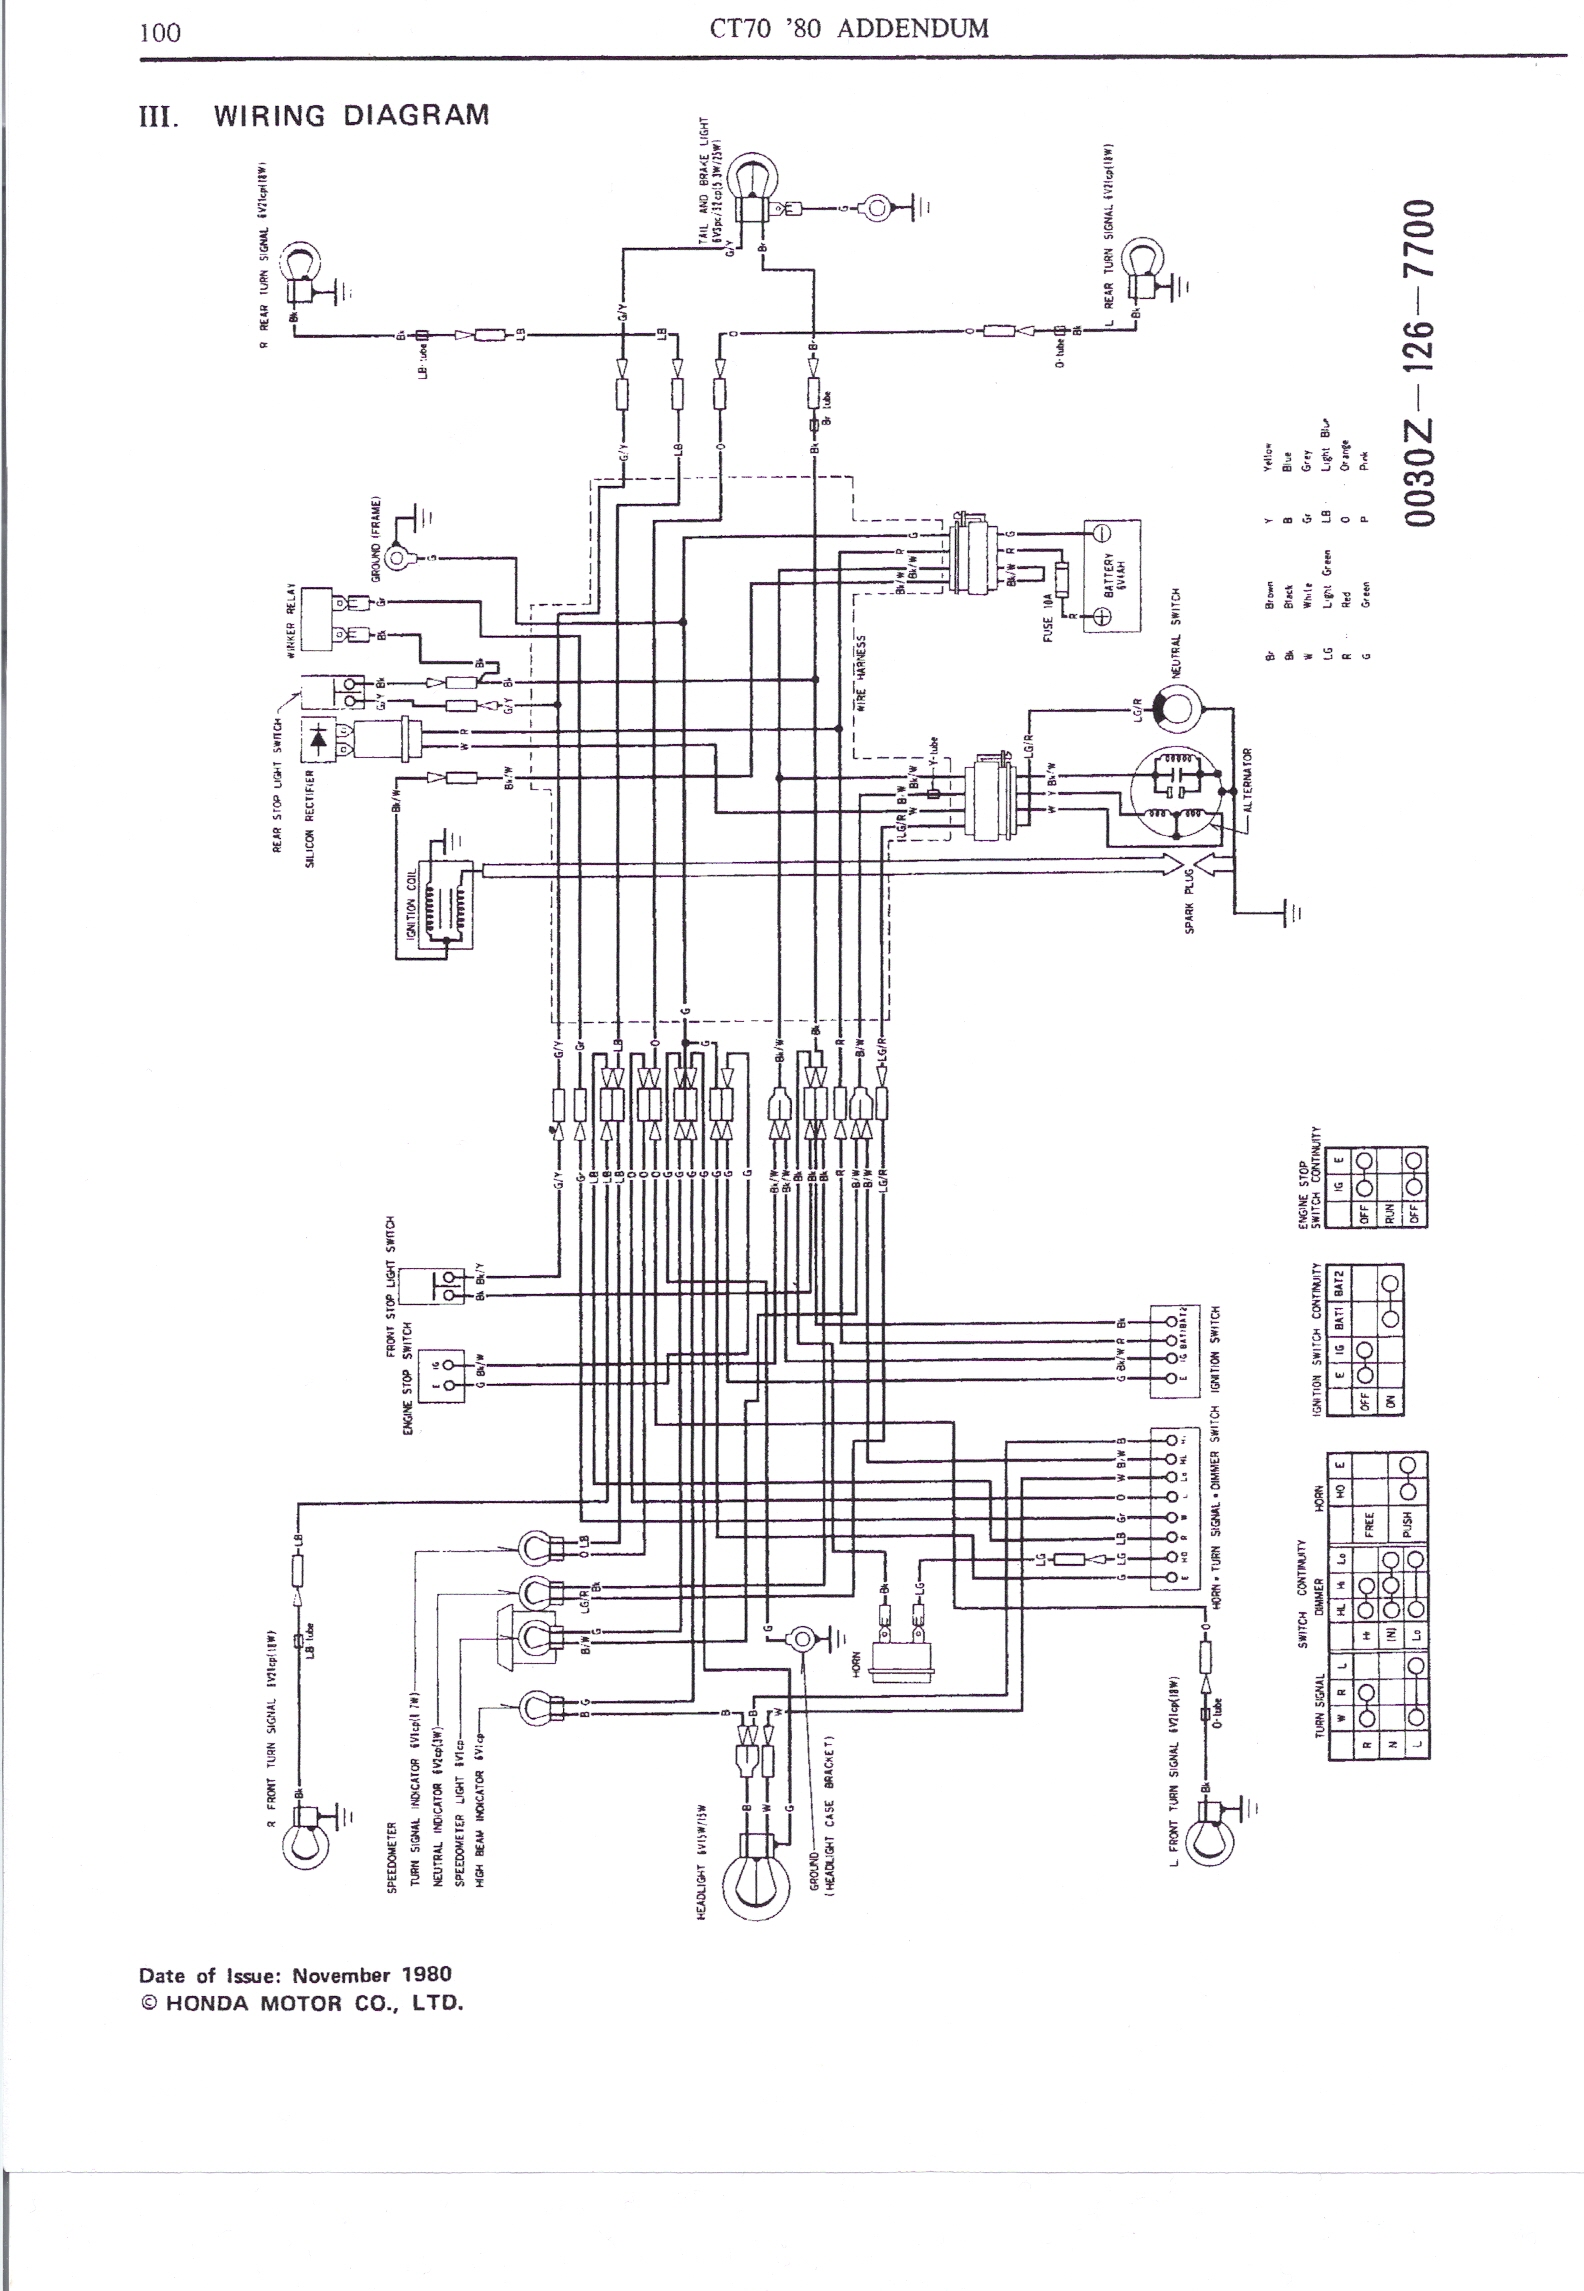 Terrific 1982 honda ct70 wiring diagram pictures best image wire wanted wiring diagram for a 1982 ct70 asfbconference2016 Choice Image